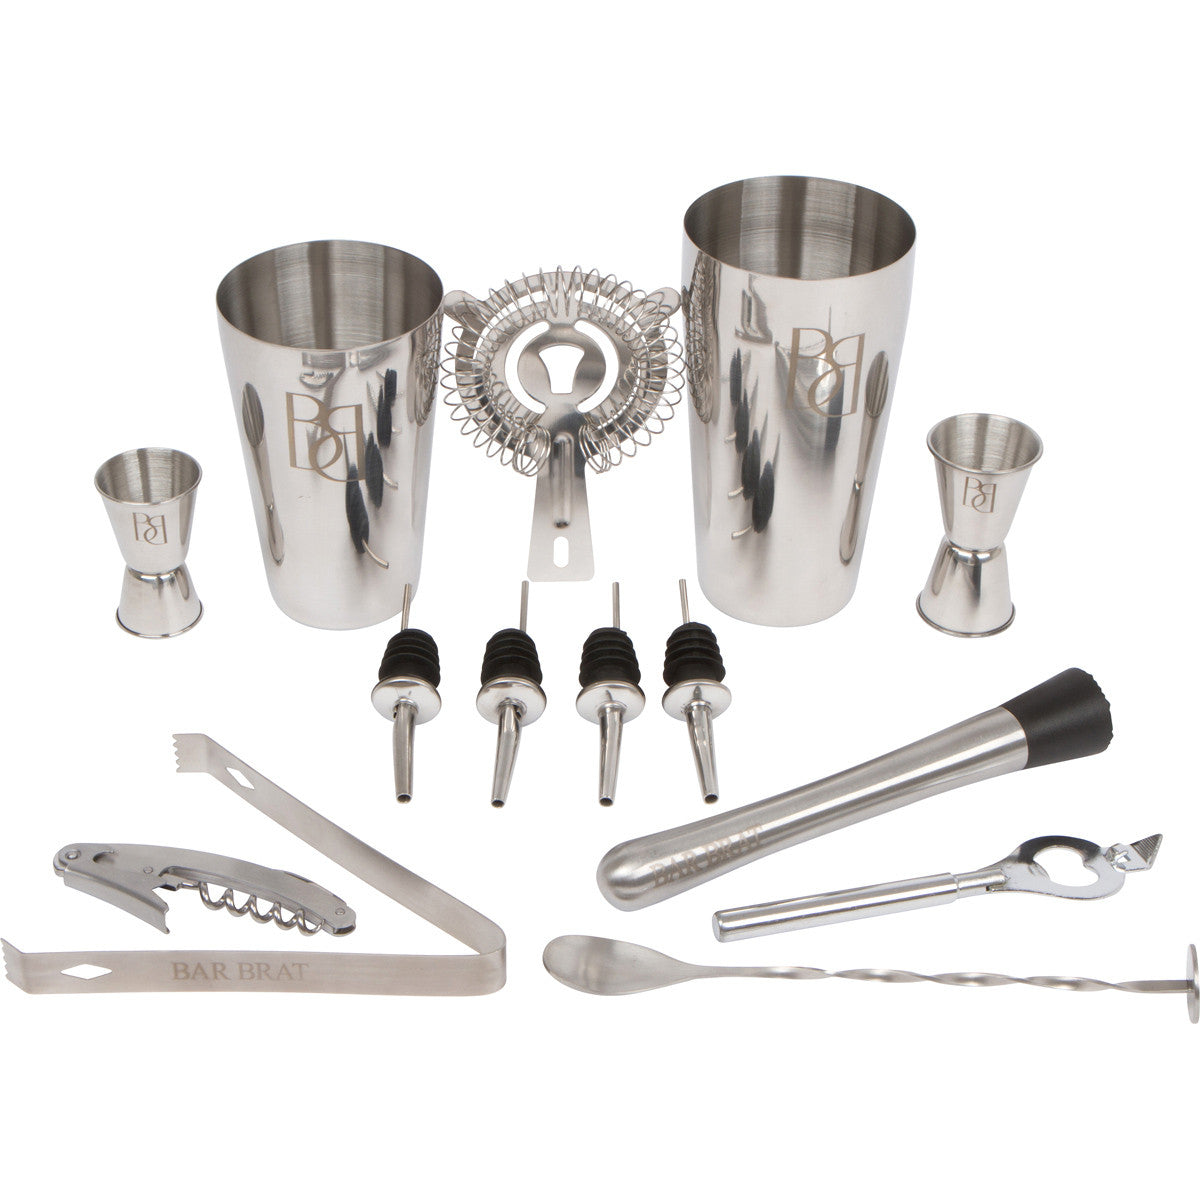 Stainless Steel Cocktail Shaker 3 Pieces Bar Set Cocktail Drinks Jigger Shaker